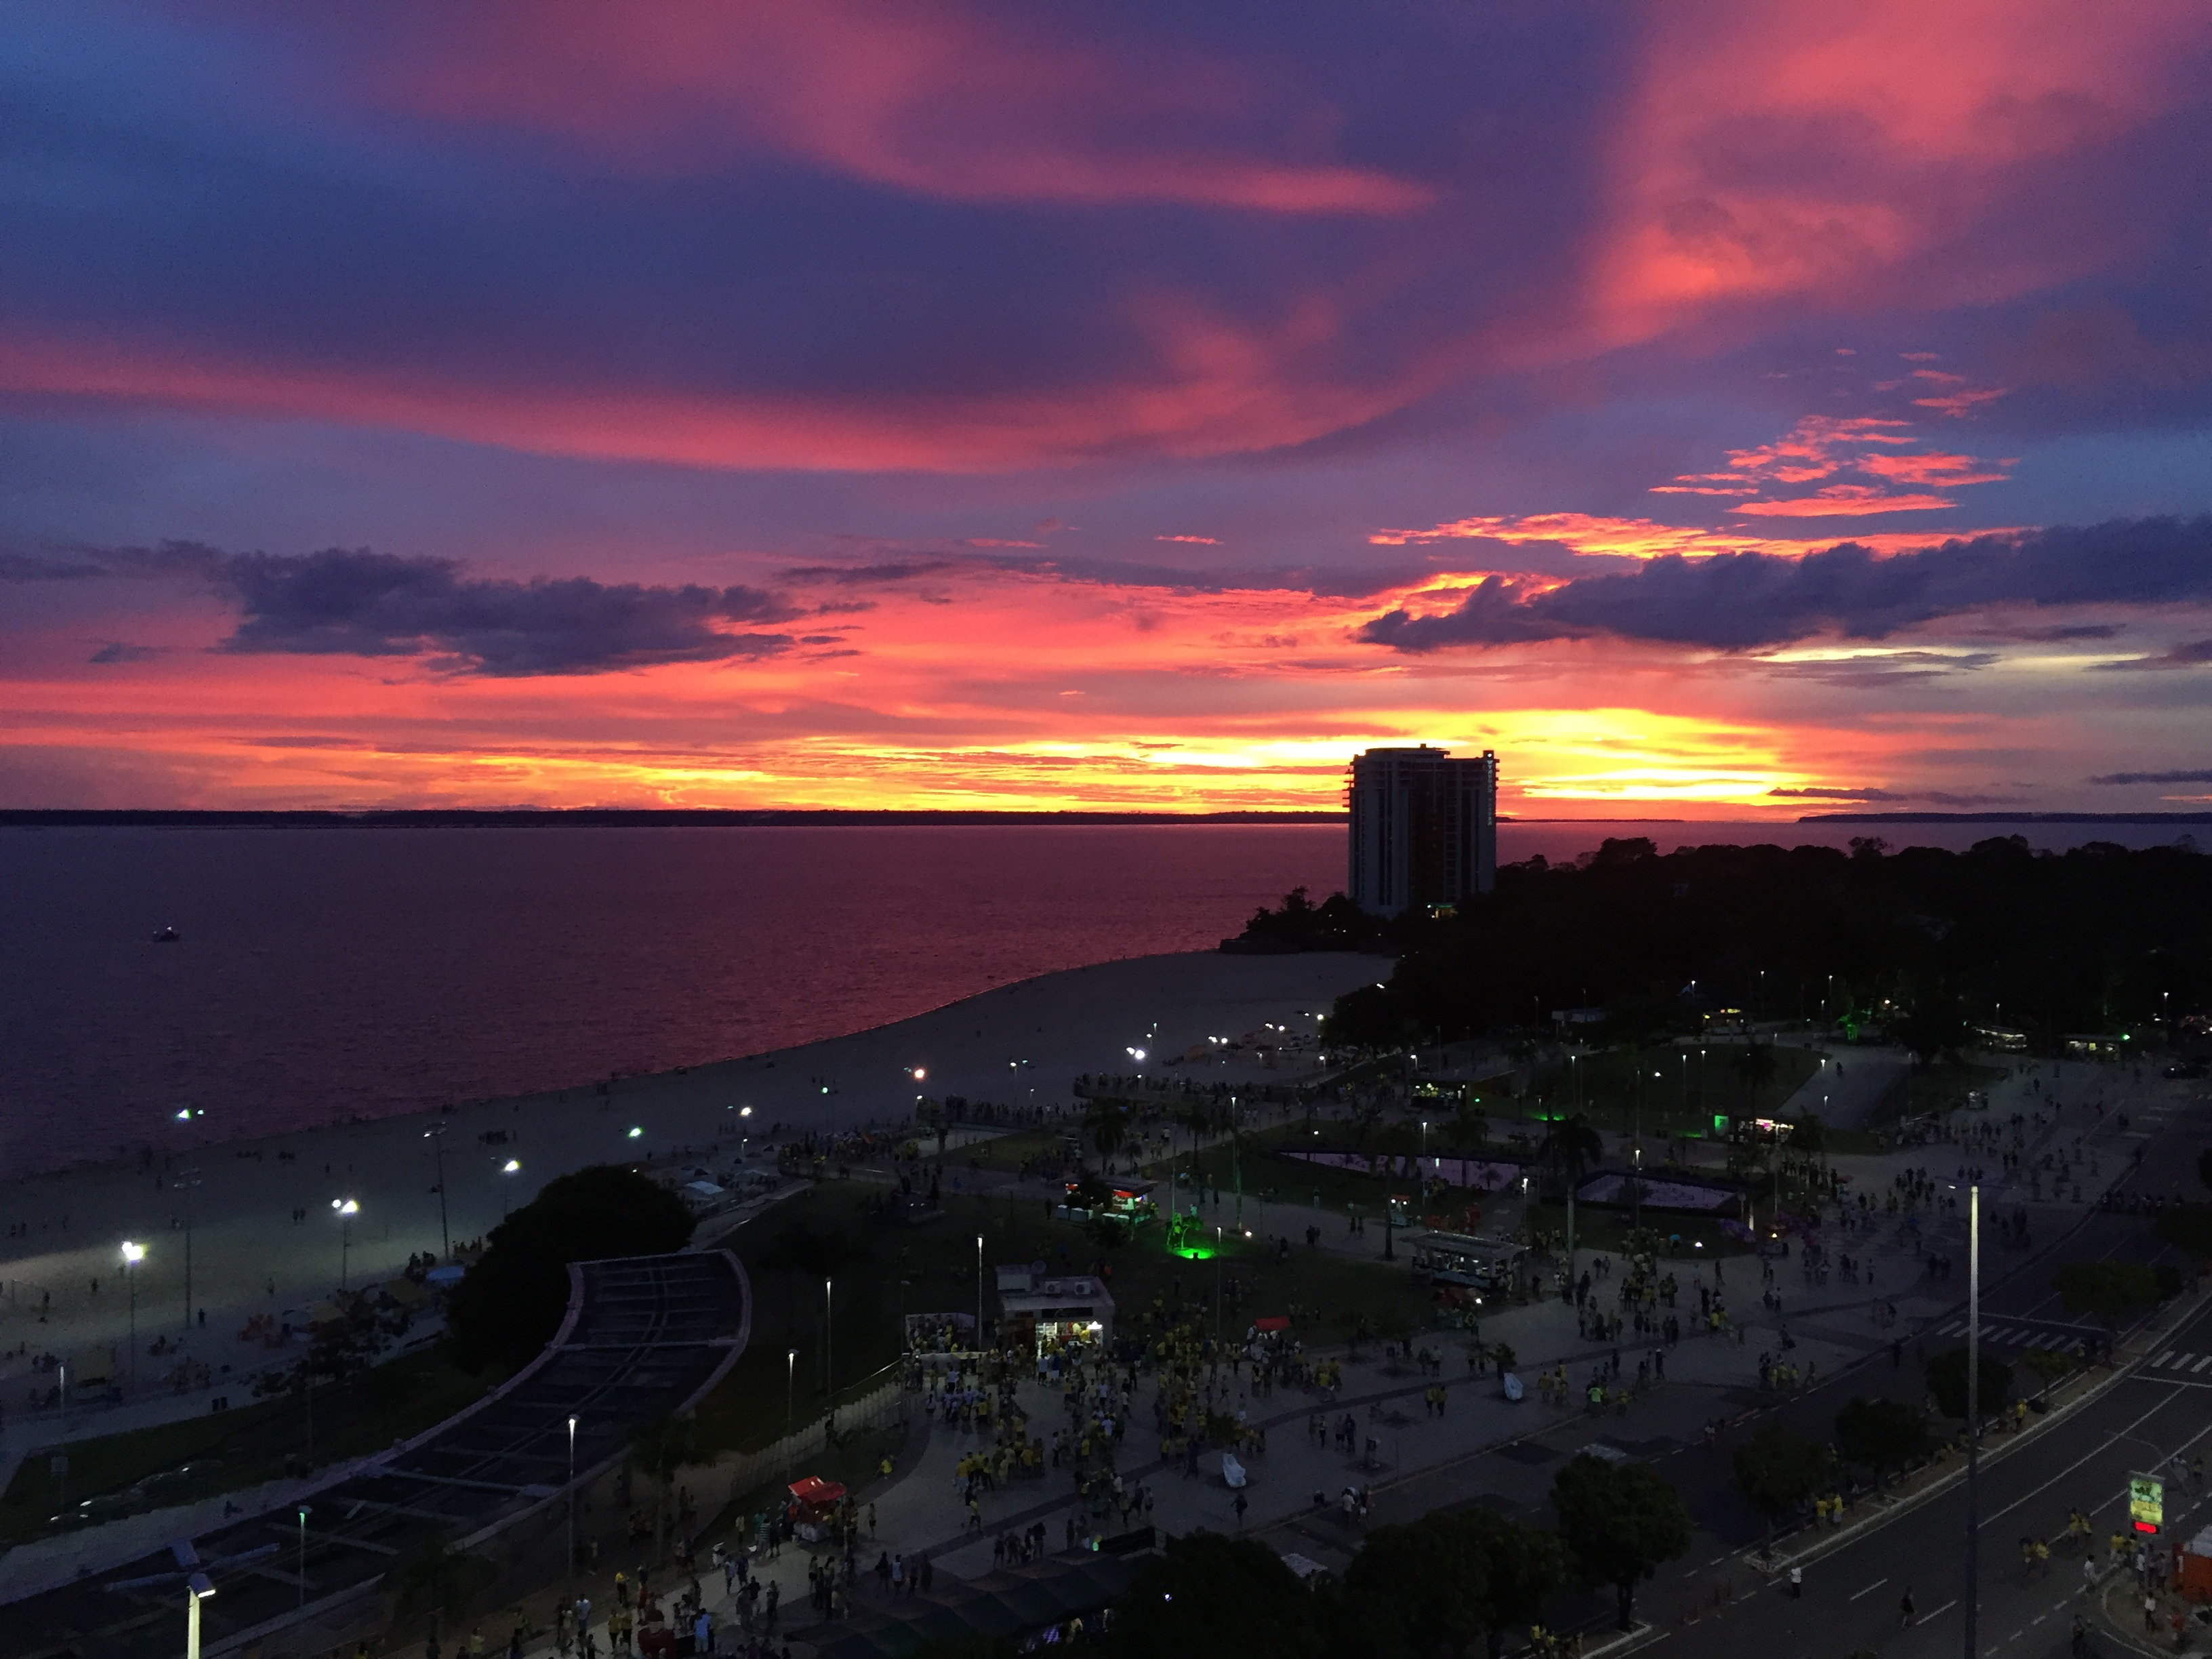 Caption: Sunset in Manaus, Credit: Lorena Daou Paixao e Silva, 2016